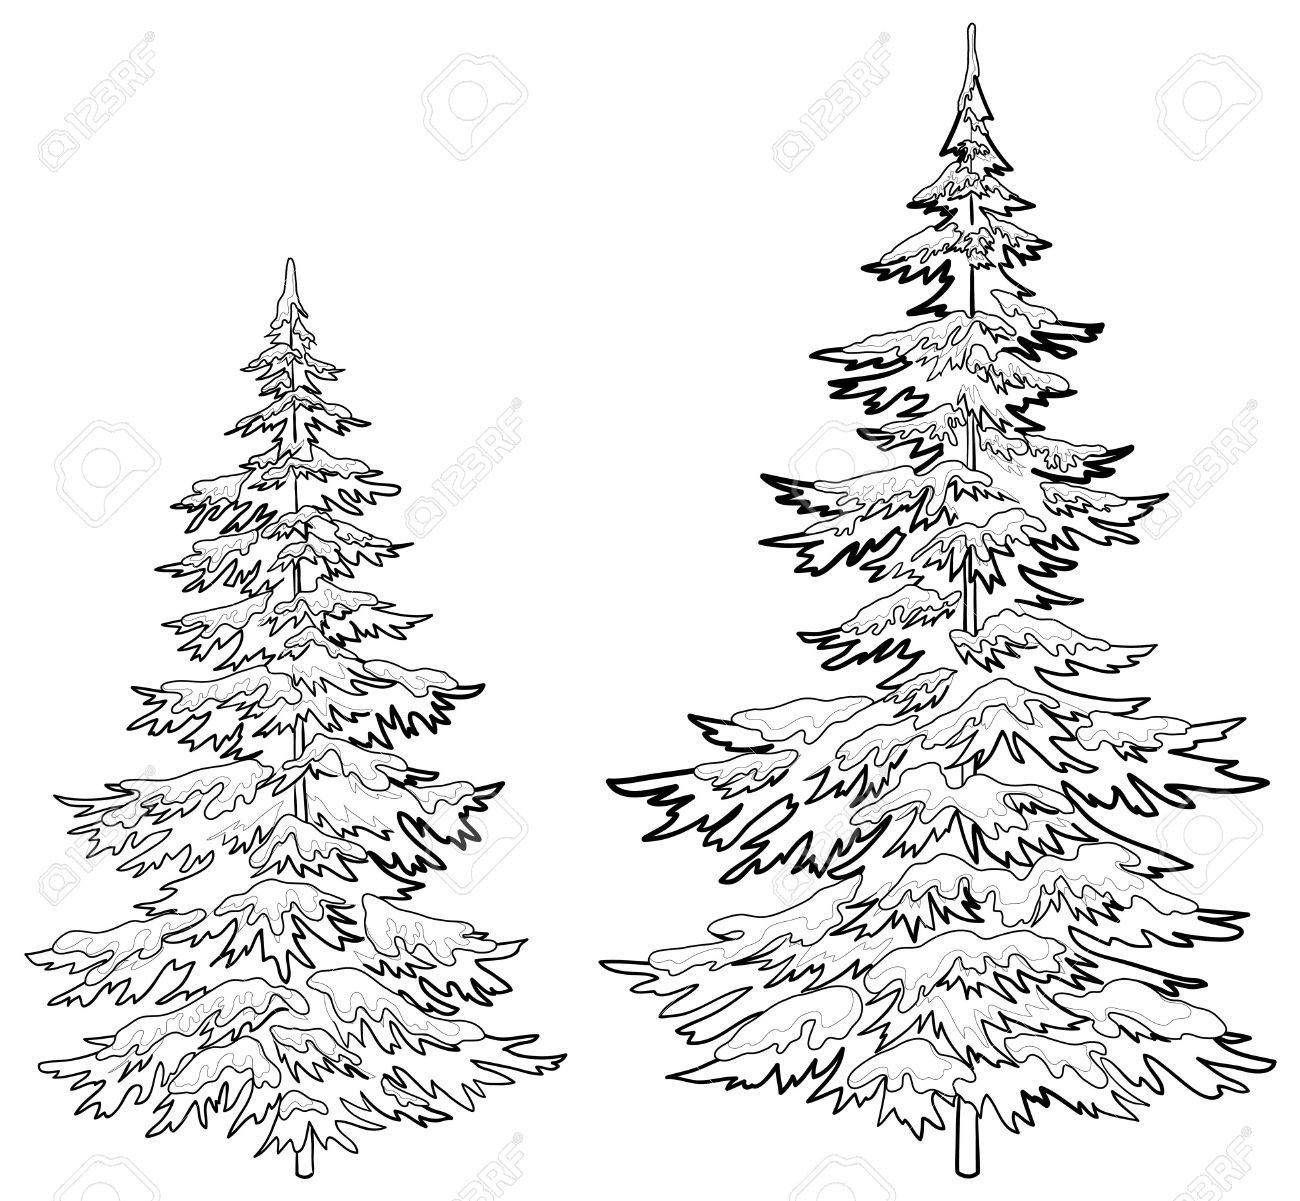 Pin By Becca Mcilwain On Ideas Tree Drawings Pencil Christmas Tree Drawing Tree Drawing